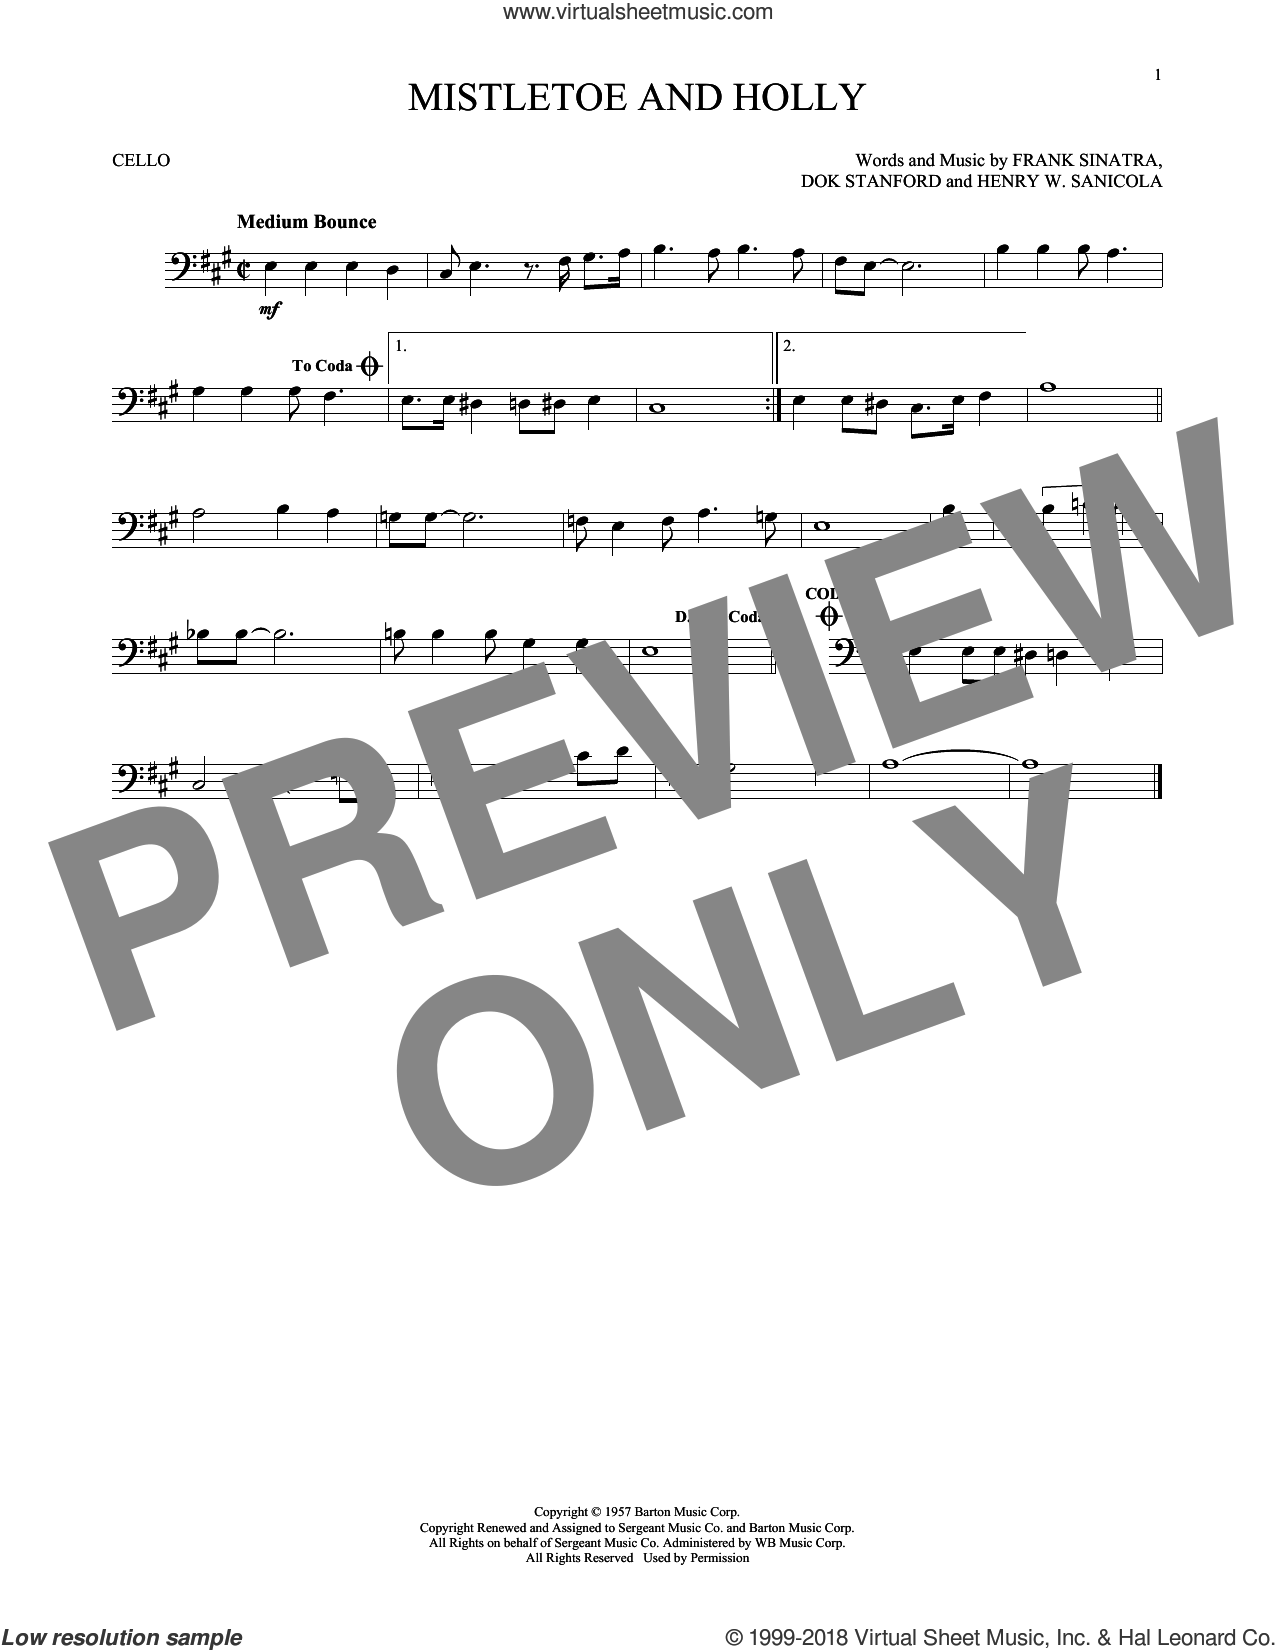 Mistletoe And Holly sheet music for cello solo by Frank Sinatra, Dok Stanford and Henry W. Sanicola, intermediate skill level